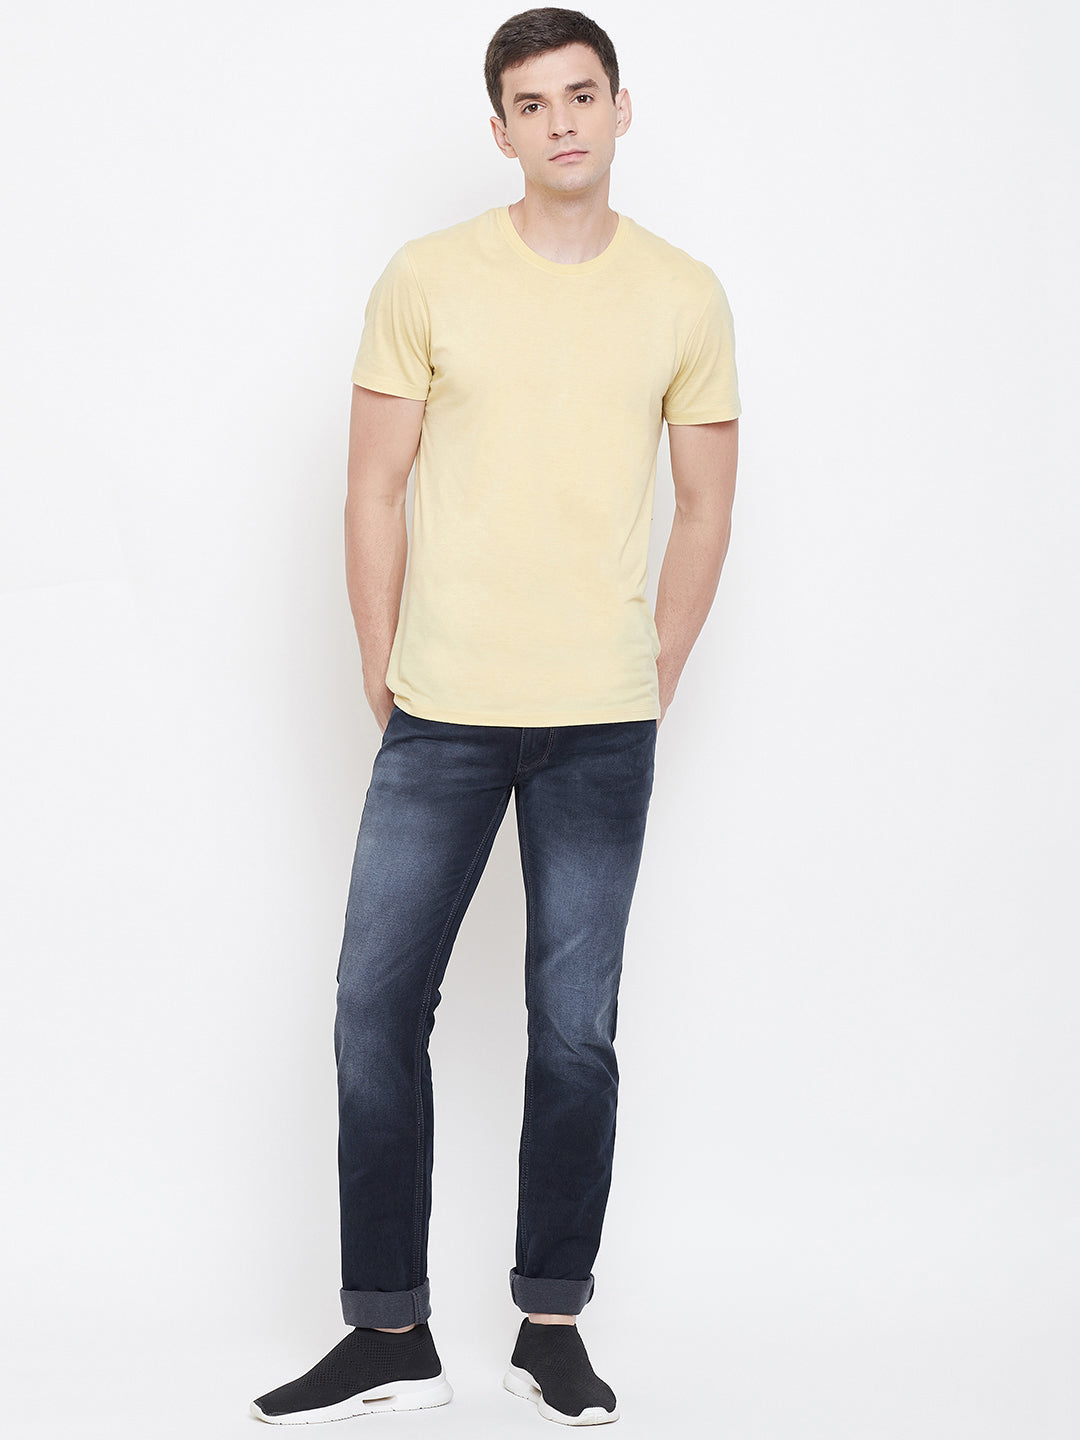 Octave apparels midnight color denim for men